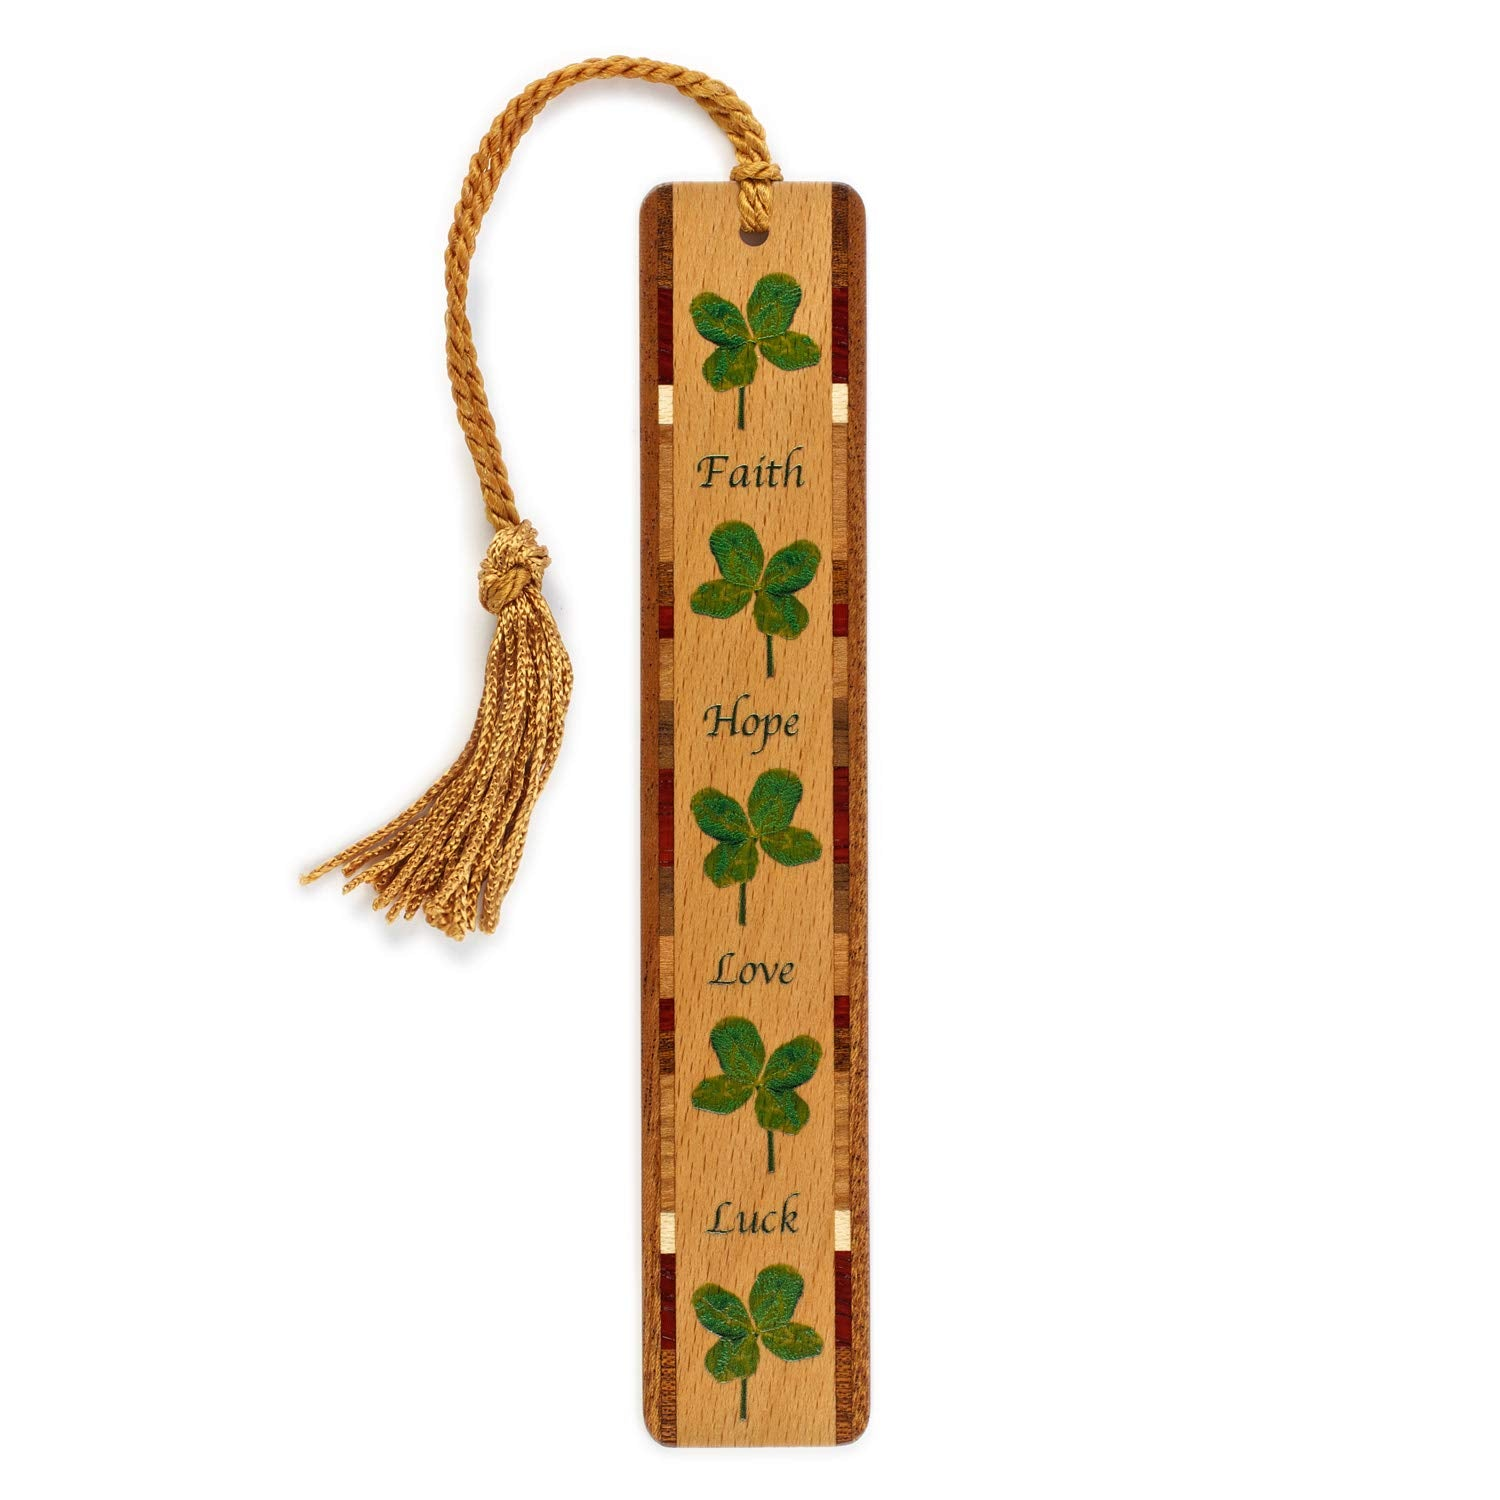 4 Leaf Clover (Faith, Hope, Love, Luck) Wooden Bookmark with Tassel